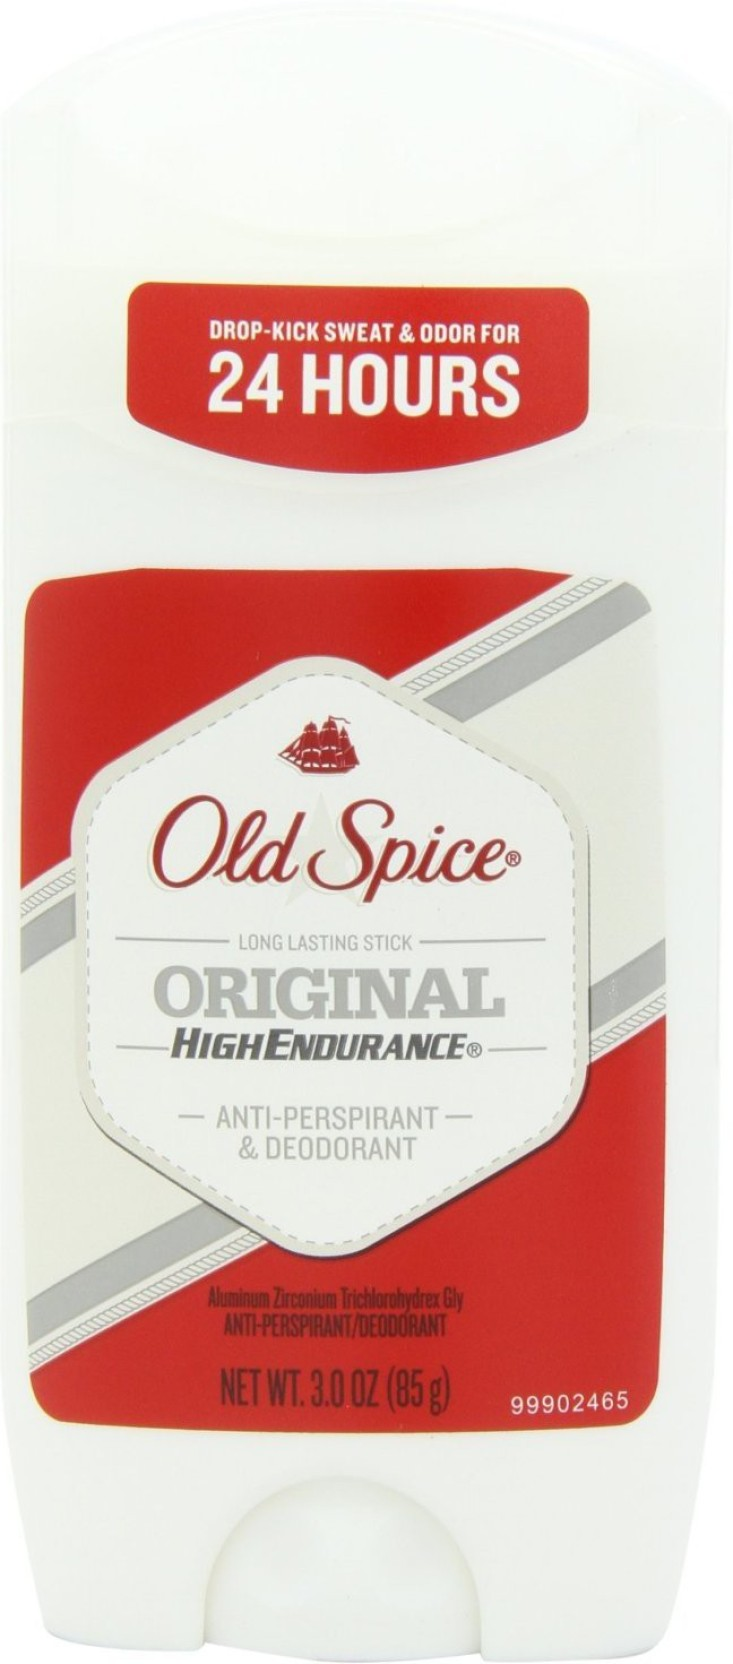 Old Spice Original High Endurance Deodorant Stick For Men Price